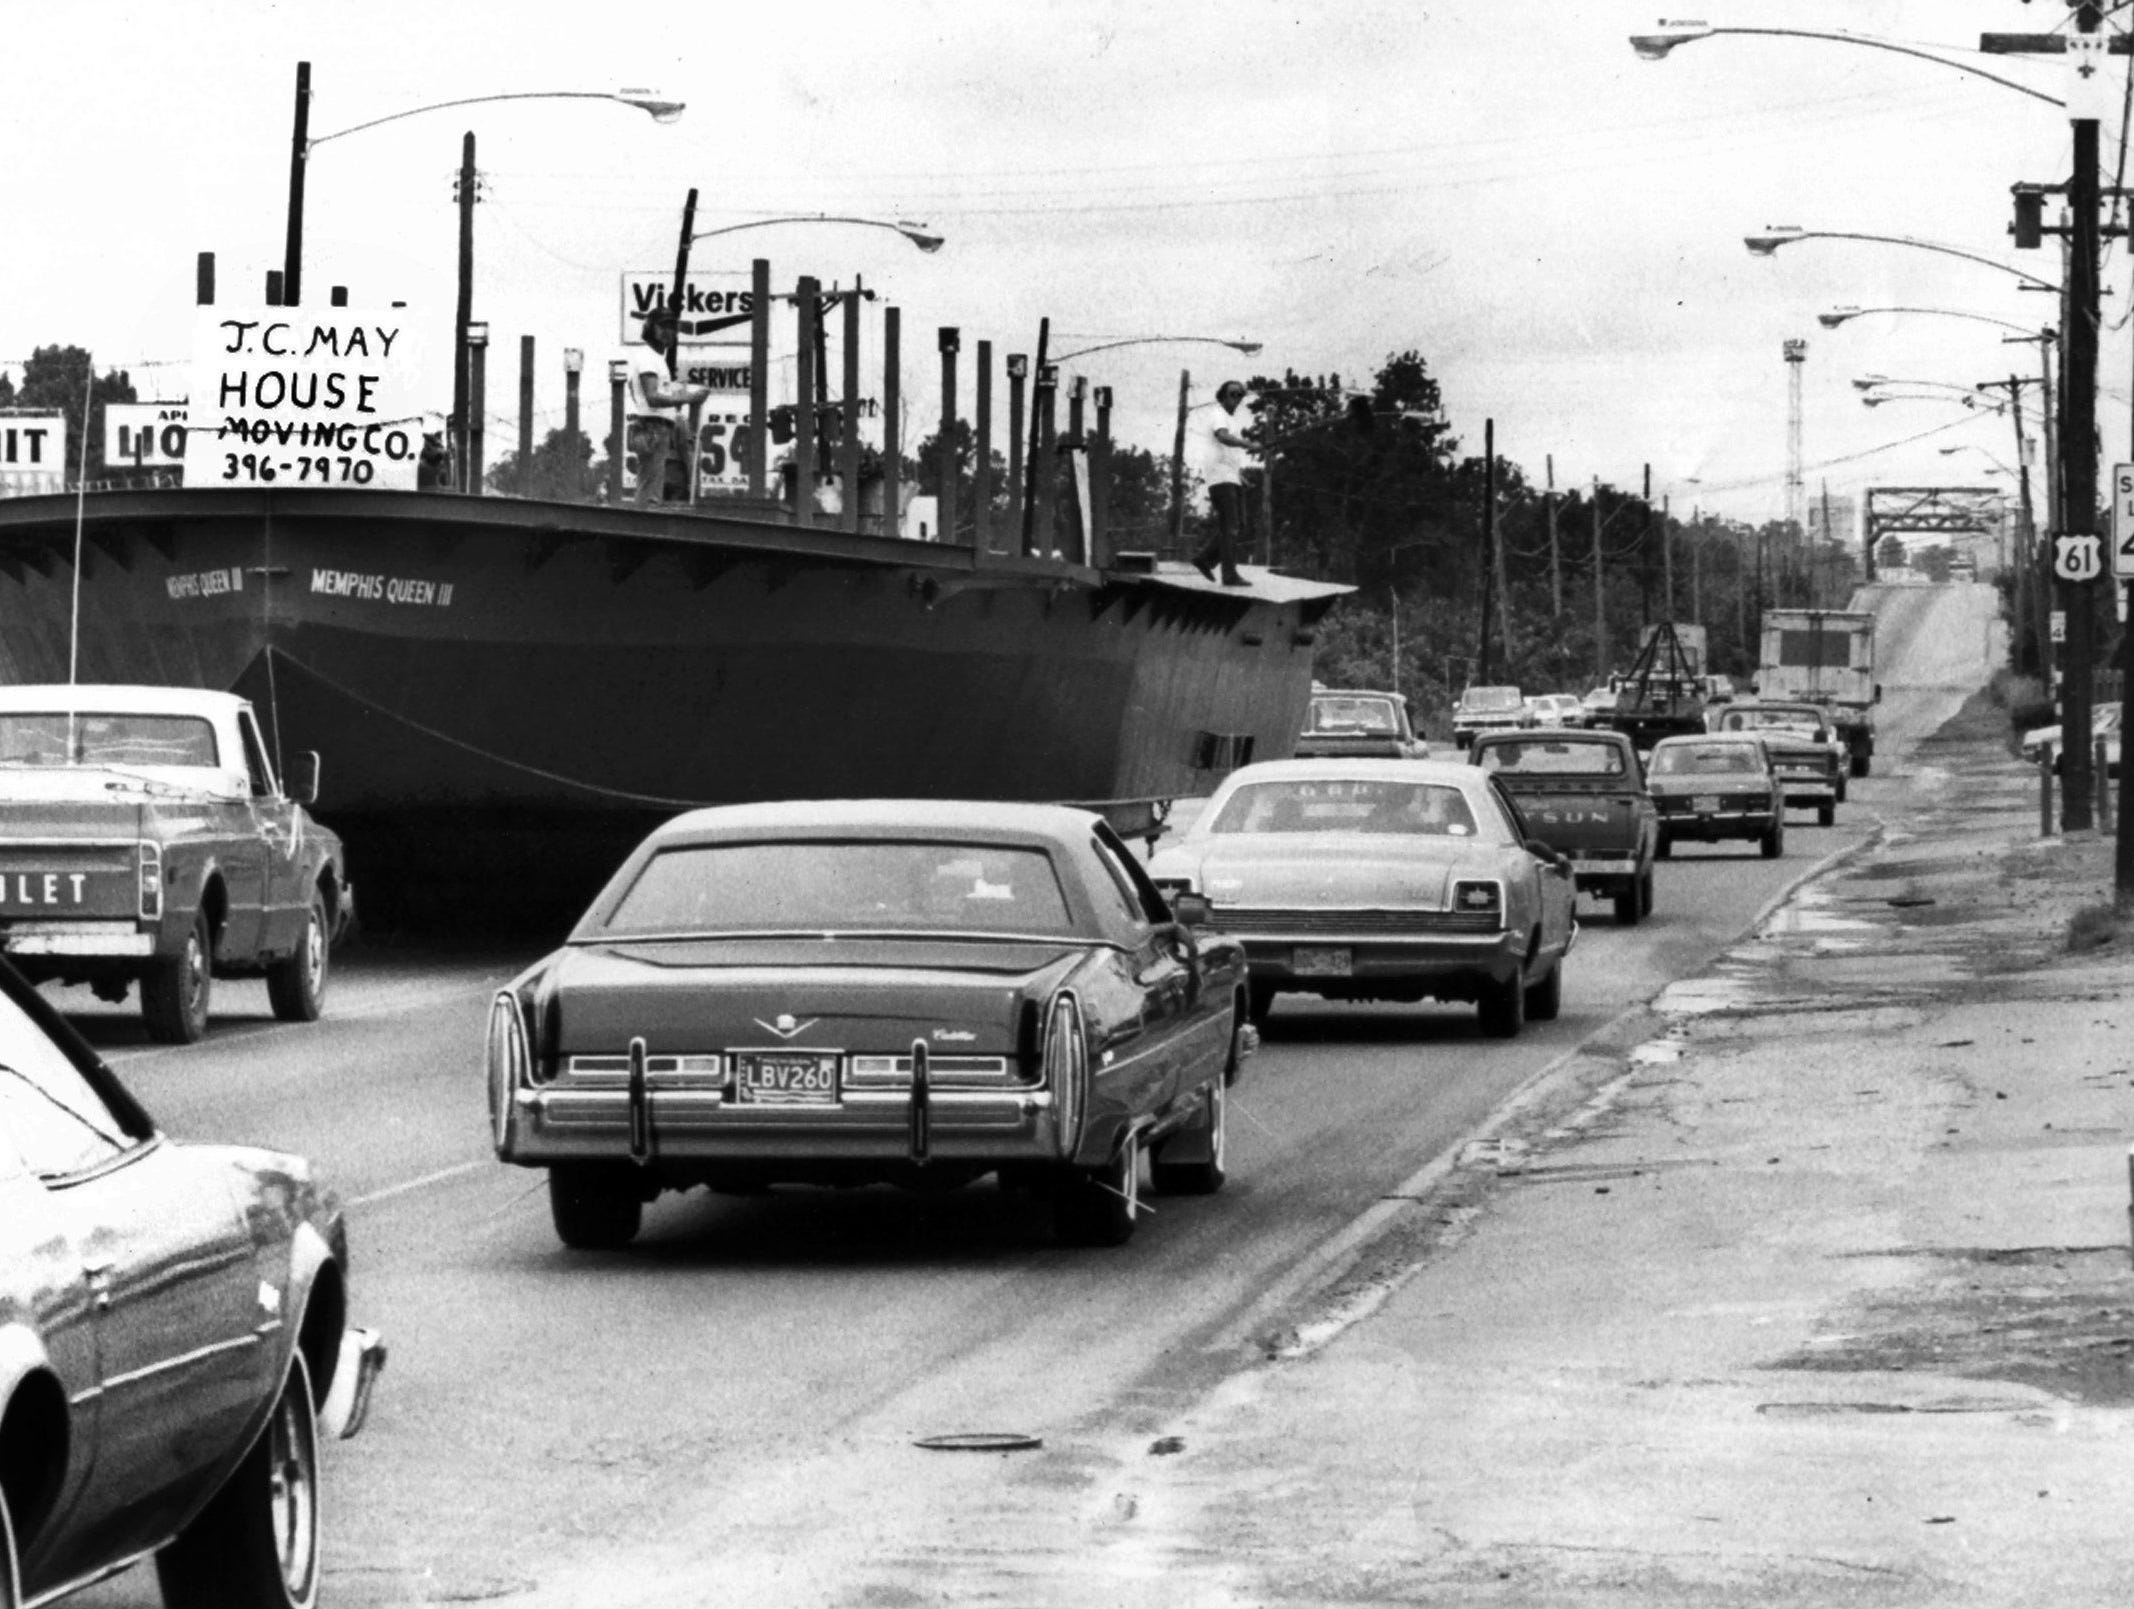 """The hull of the Memphis Queen III, hatched in the back yard of former """"fleet"""" owner Tom Menaley, cruised majestically but slowly down U.S. 61 toward McKellar Lake on 17 Aug 1977. Meanley started construciton in November, 1975, in """"my shipyard,"""" which is an old barnyard at 1398 West Shelby Drive. When finished, the new Queen will be 114 feet long, 35 feet wide and will carry a maximum of 400 persons on 500 square feet of deck space. Said Meanley, who is in the process of selling the Memphis Queen Co. to his son, """"It is designed in the tradition of old steamboats, but will have a functional paddlewheel, one that will actually help in pushing the vessel. It also will have two screw propellers, each with a separate engine."""" The moving trip was 'quite uneventful' with the hull resting on steel beams like a house. It traveled at 15 to 20 mph. It will be launched, then go to drydock for attachment of cabins, decks and other things needed by excursion steamers."""